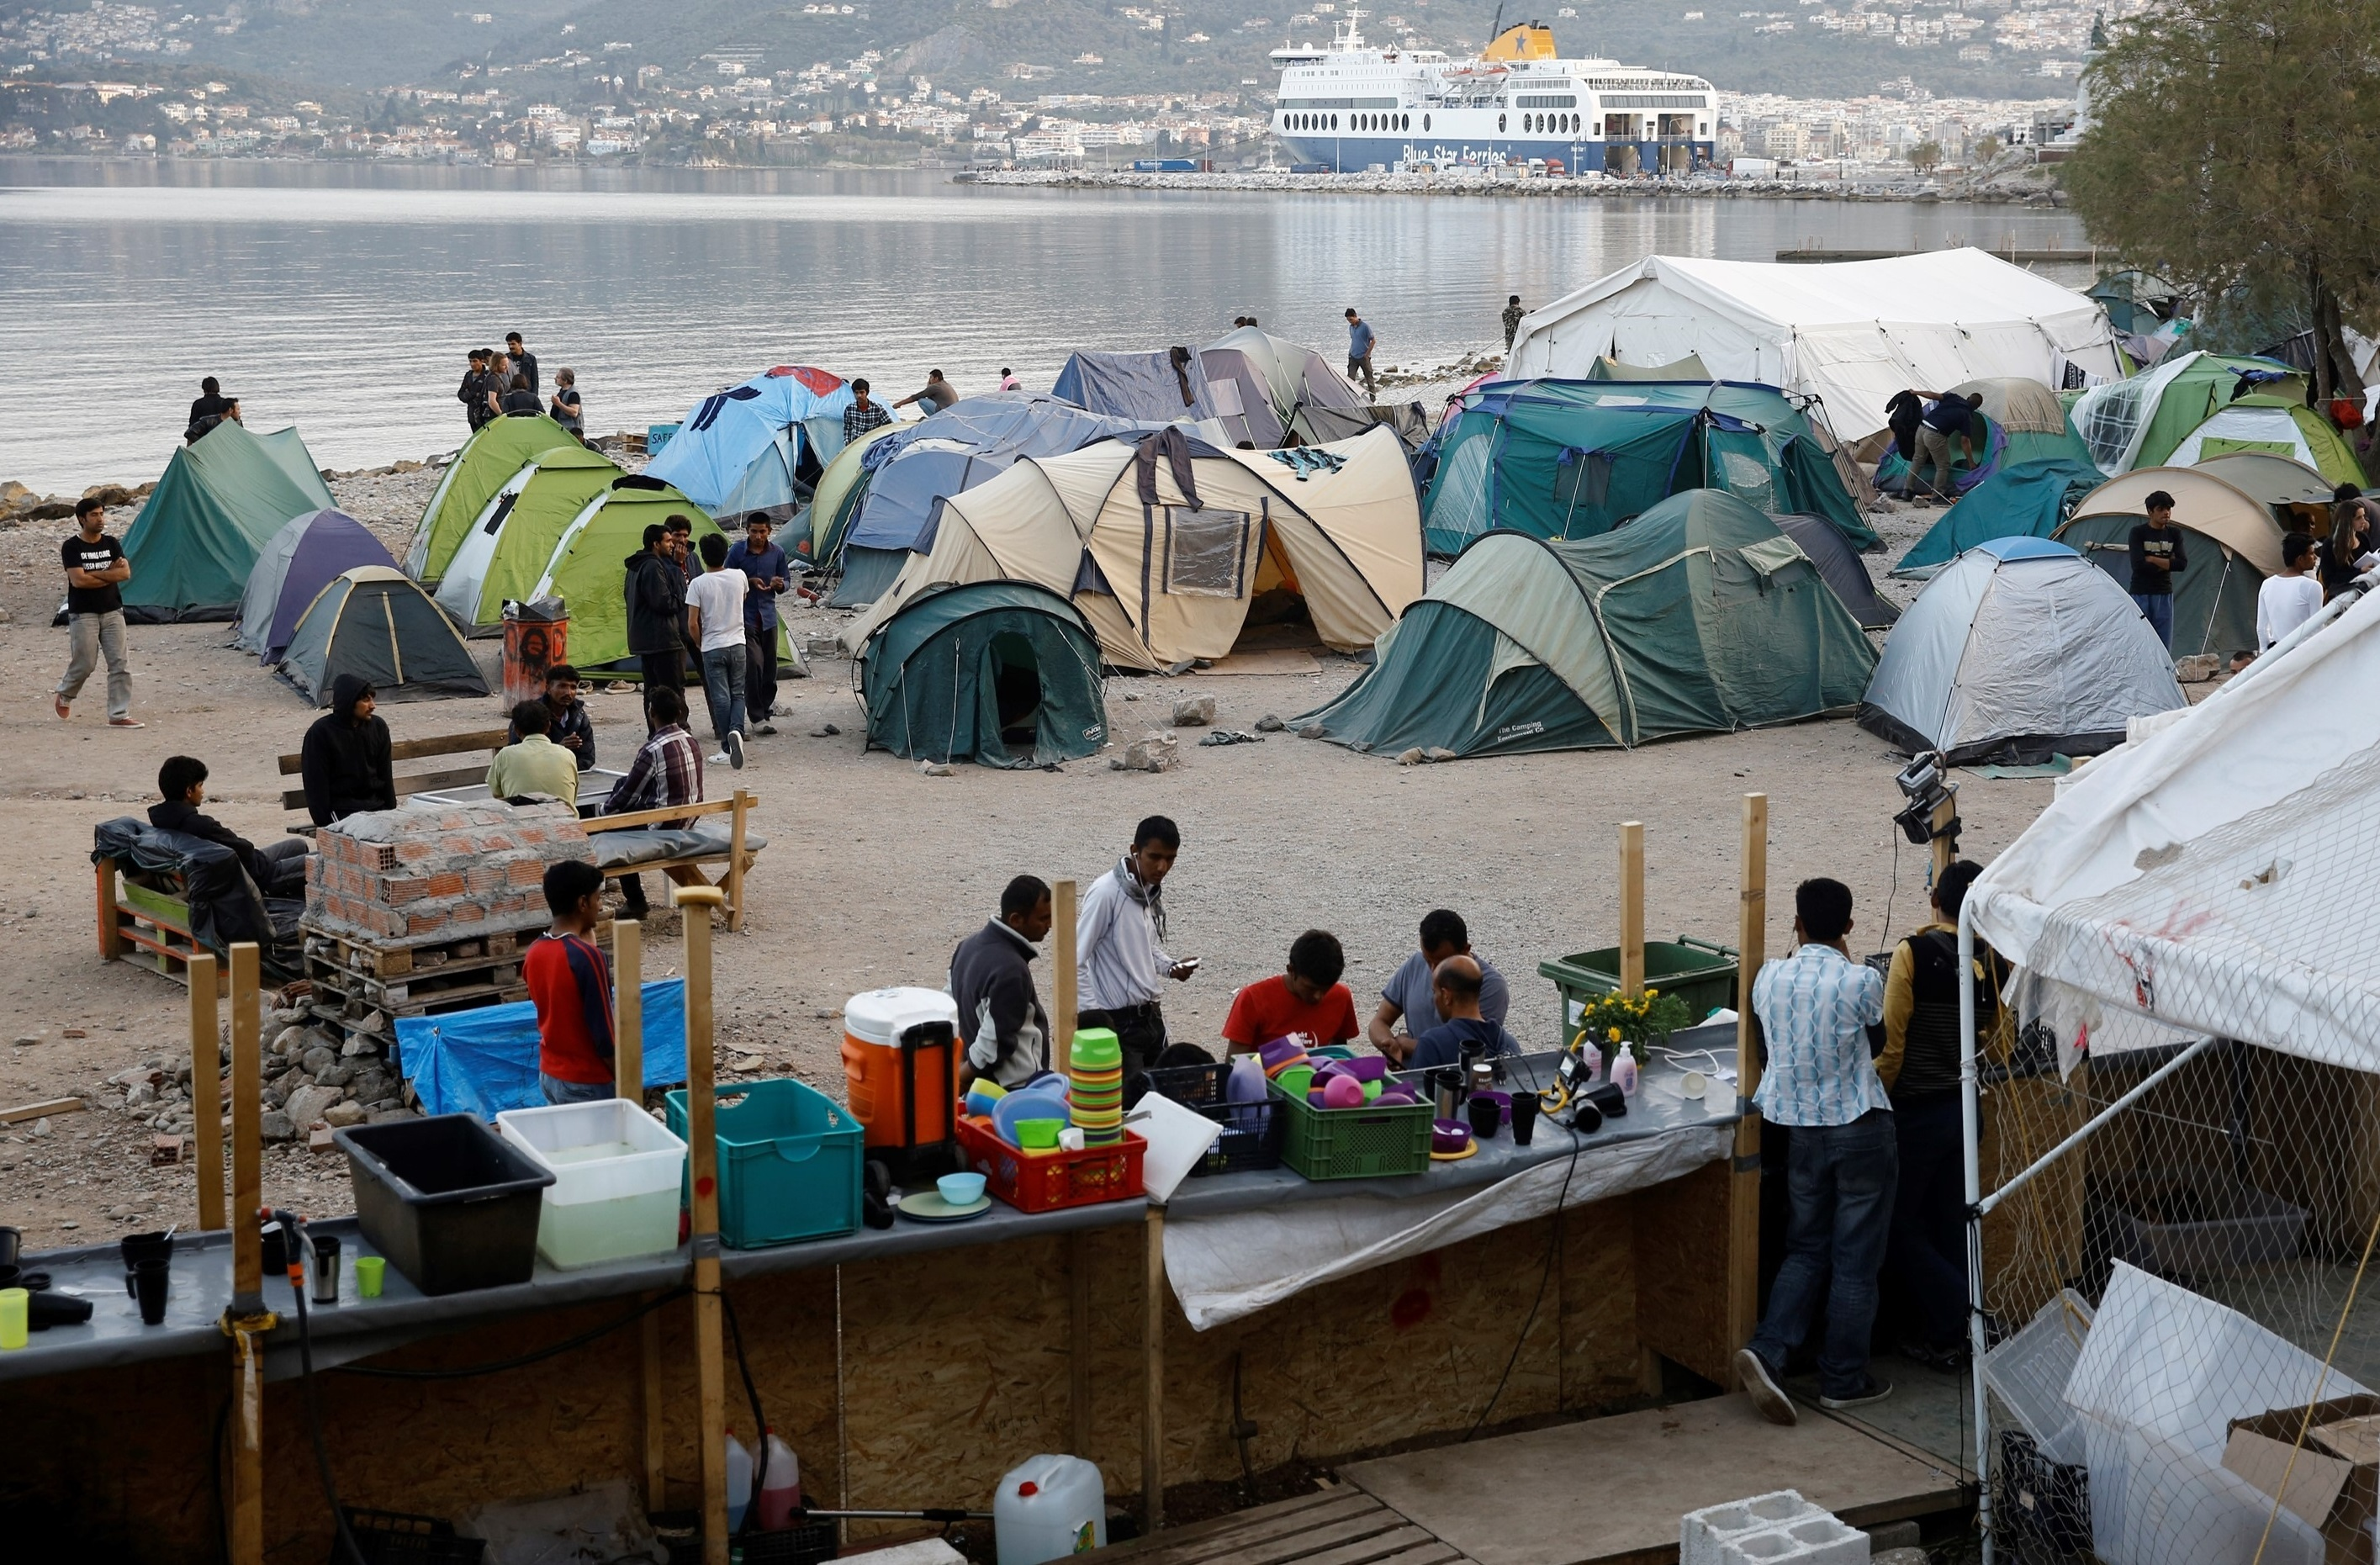 Refugee camp in Lesbos Island, Greece (Ayhan Mehmet/Anadolu Agency/Getty Images)